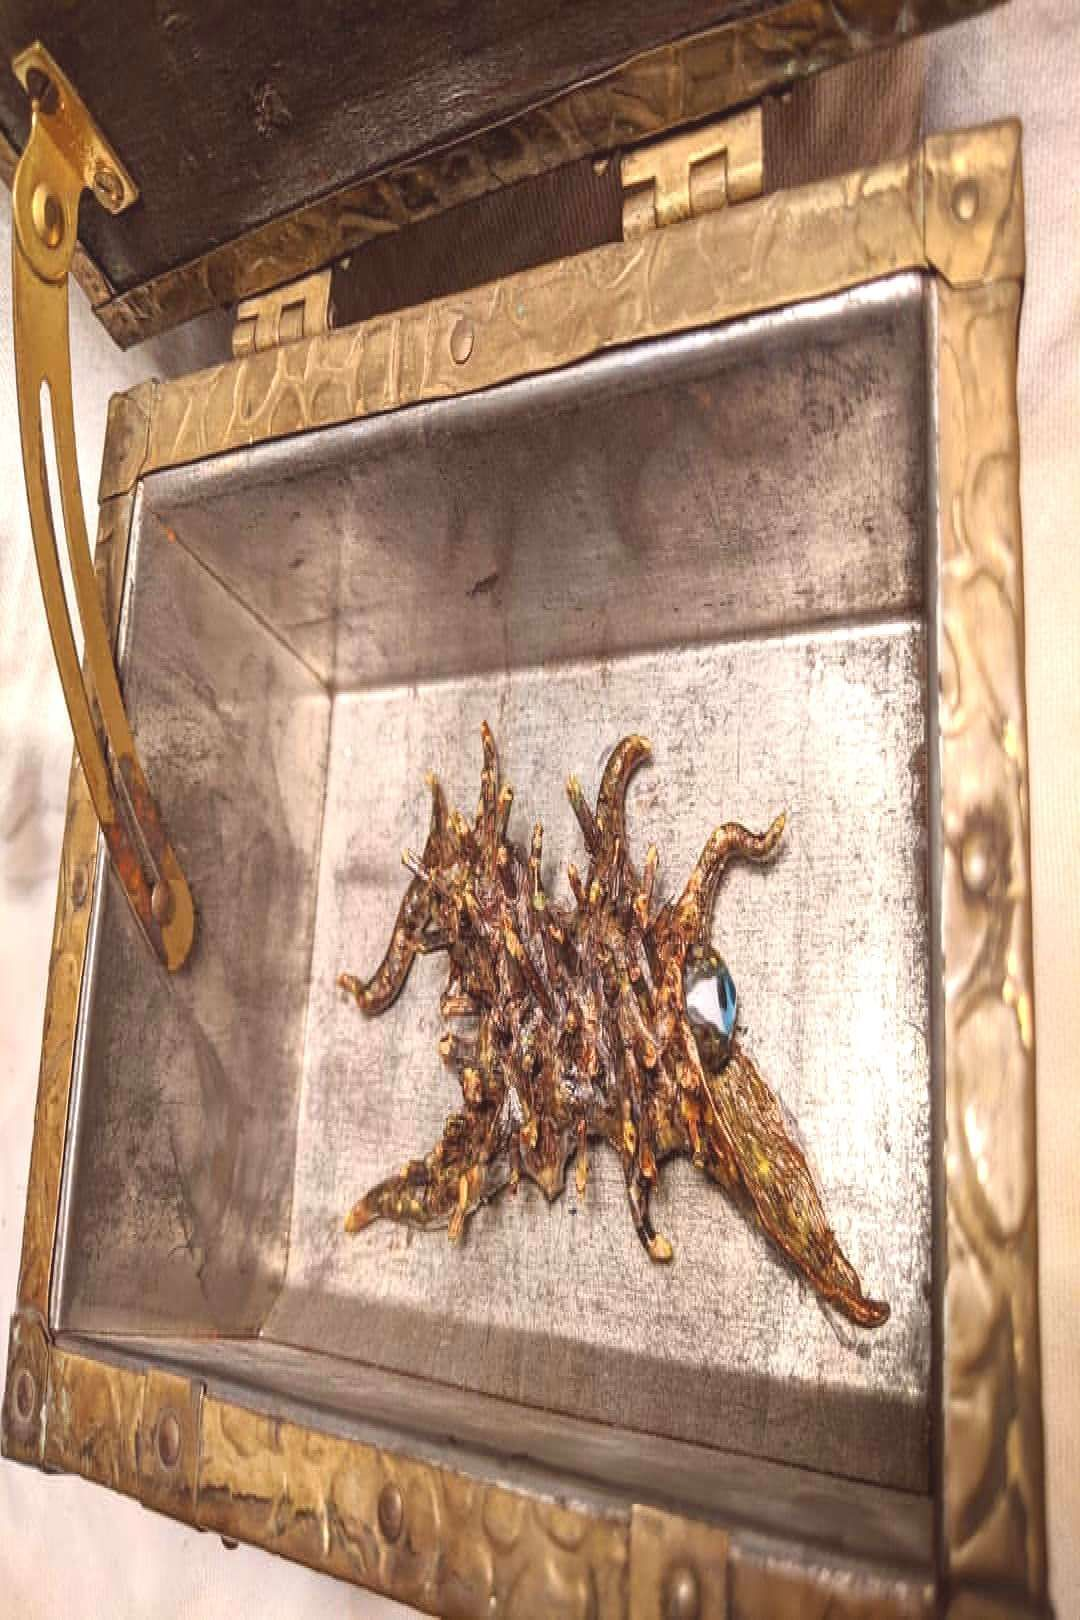 #cabinetofcuriosities #creatures #mythical #maker #march #2020 #of #on #19 Maker Of Mythical Creatures on March 19 2020You can find Cabinet of curiosities and more on our website.Maker Of Mythical Creatures on March 19 2020 #websitemaker #cabinetofcuriosities #creatures #mythical #maker #march #2020 #of #on #19 Maker Of Mythical Creatures on March 19 2020You can find Cabinet of curiosities and more on our website.Maker Of Mythical Creatures on March 19 2020